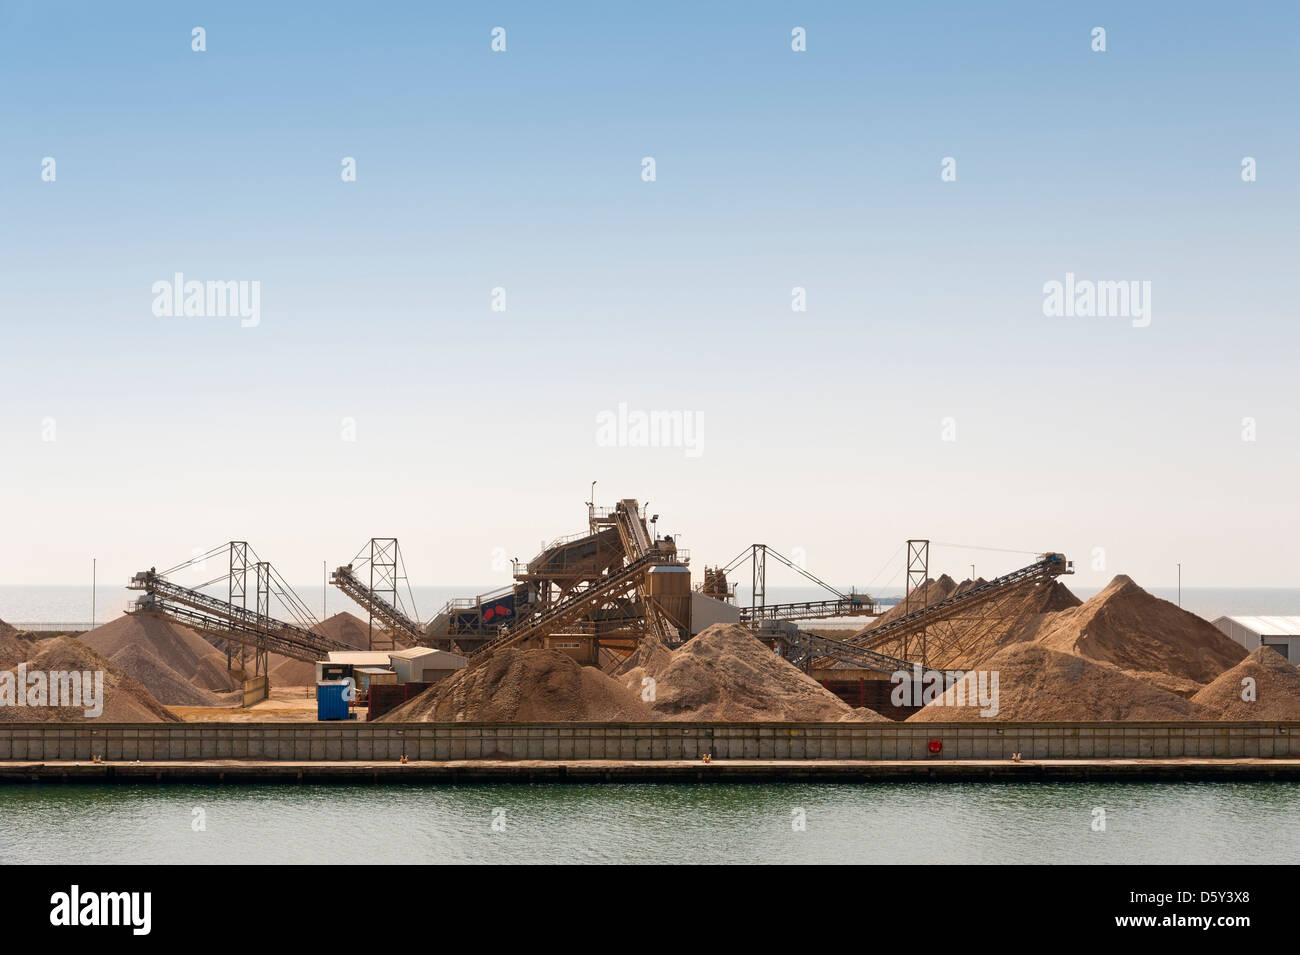 Huge piles of aggregates at an industrial processing plant in Shoreham Harbour - Shoreham-by-Sea, East Sussex, UK - Stock Image